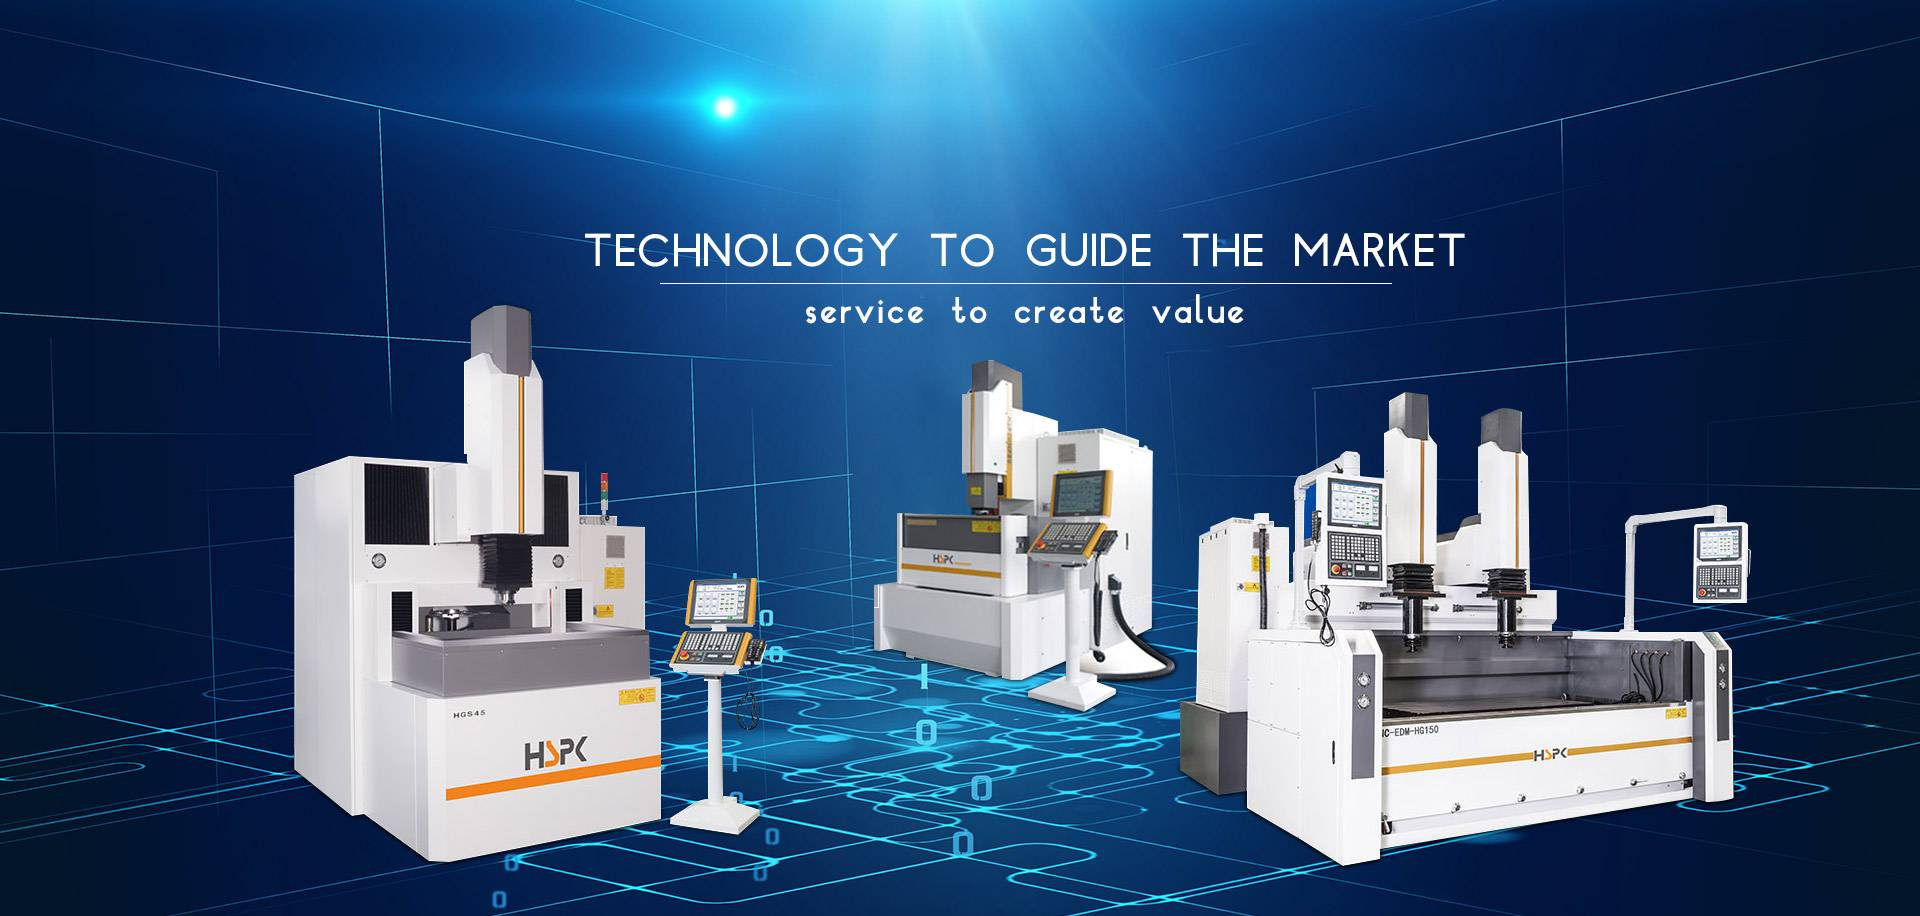 technology-to-guide-de-merk